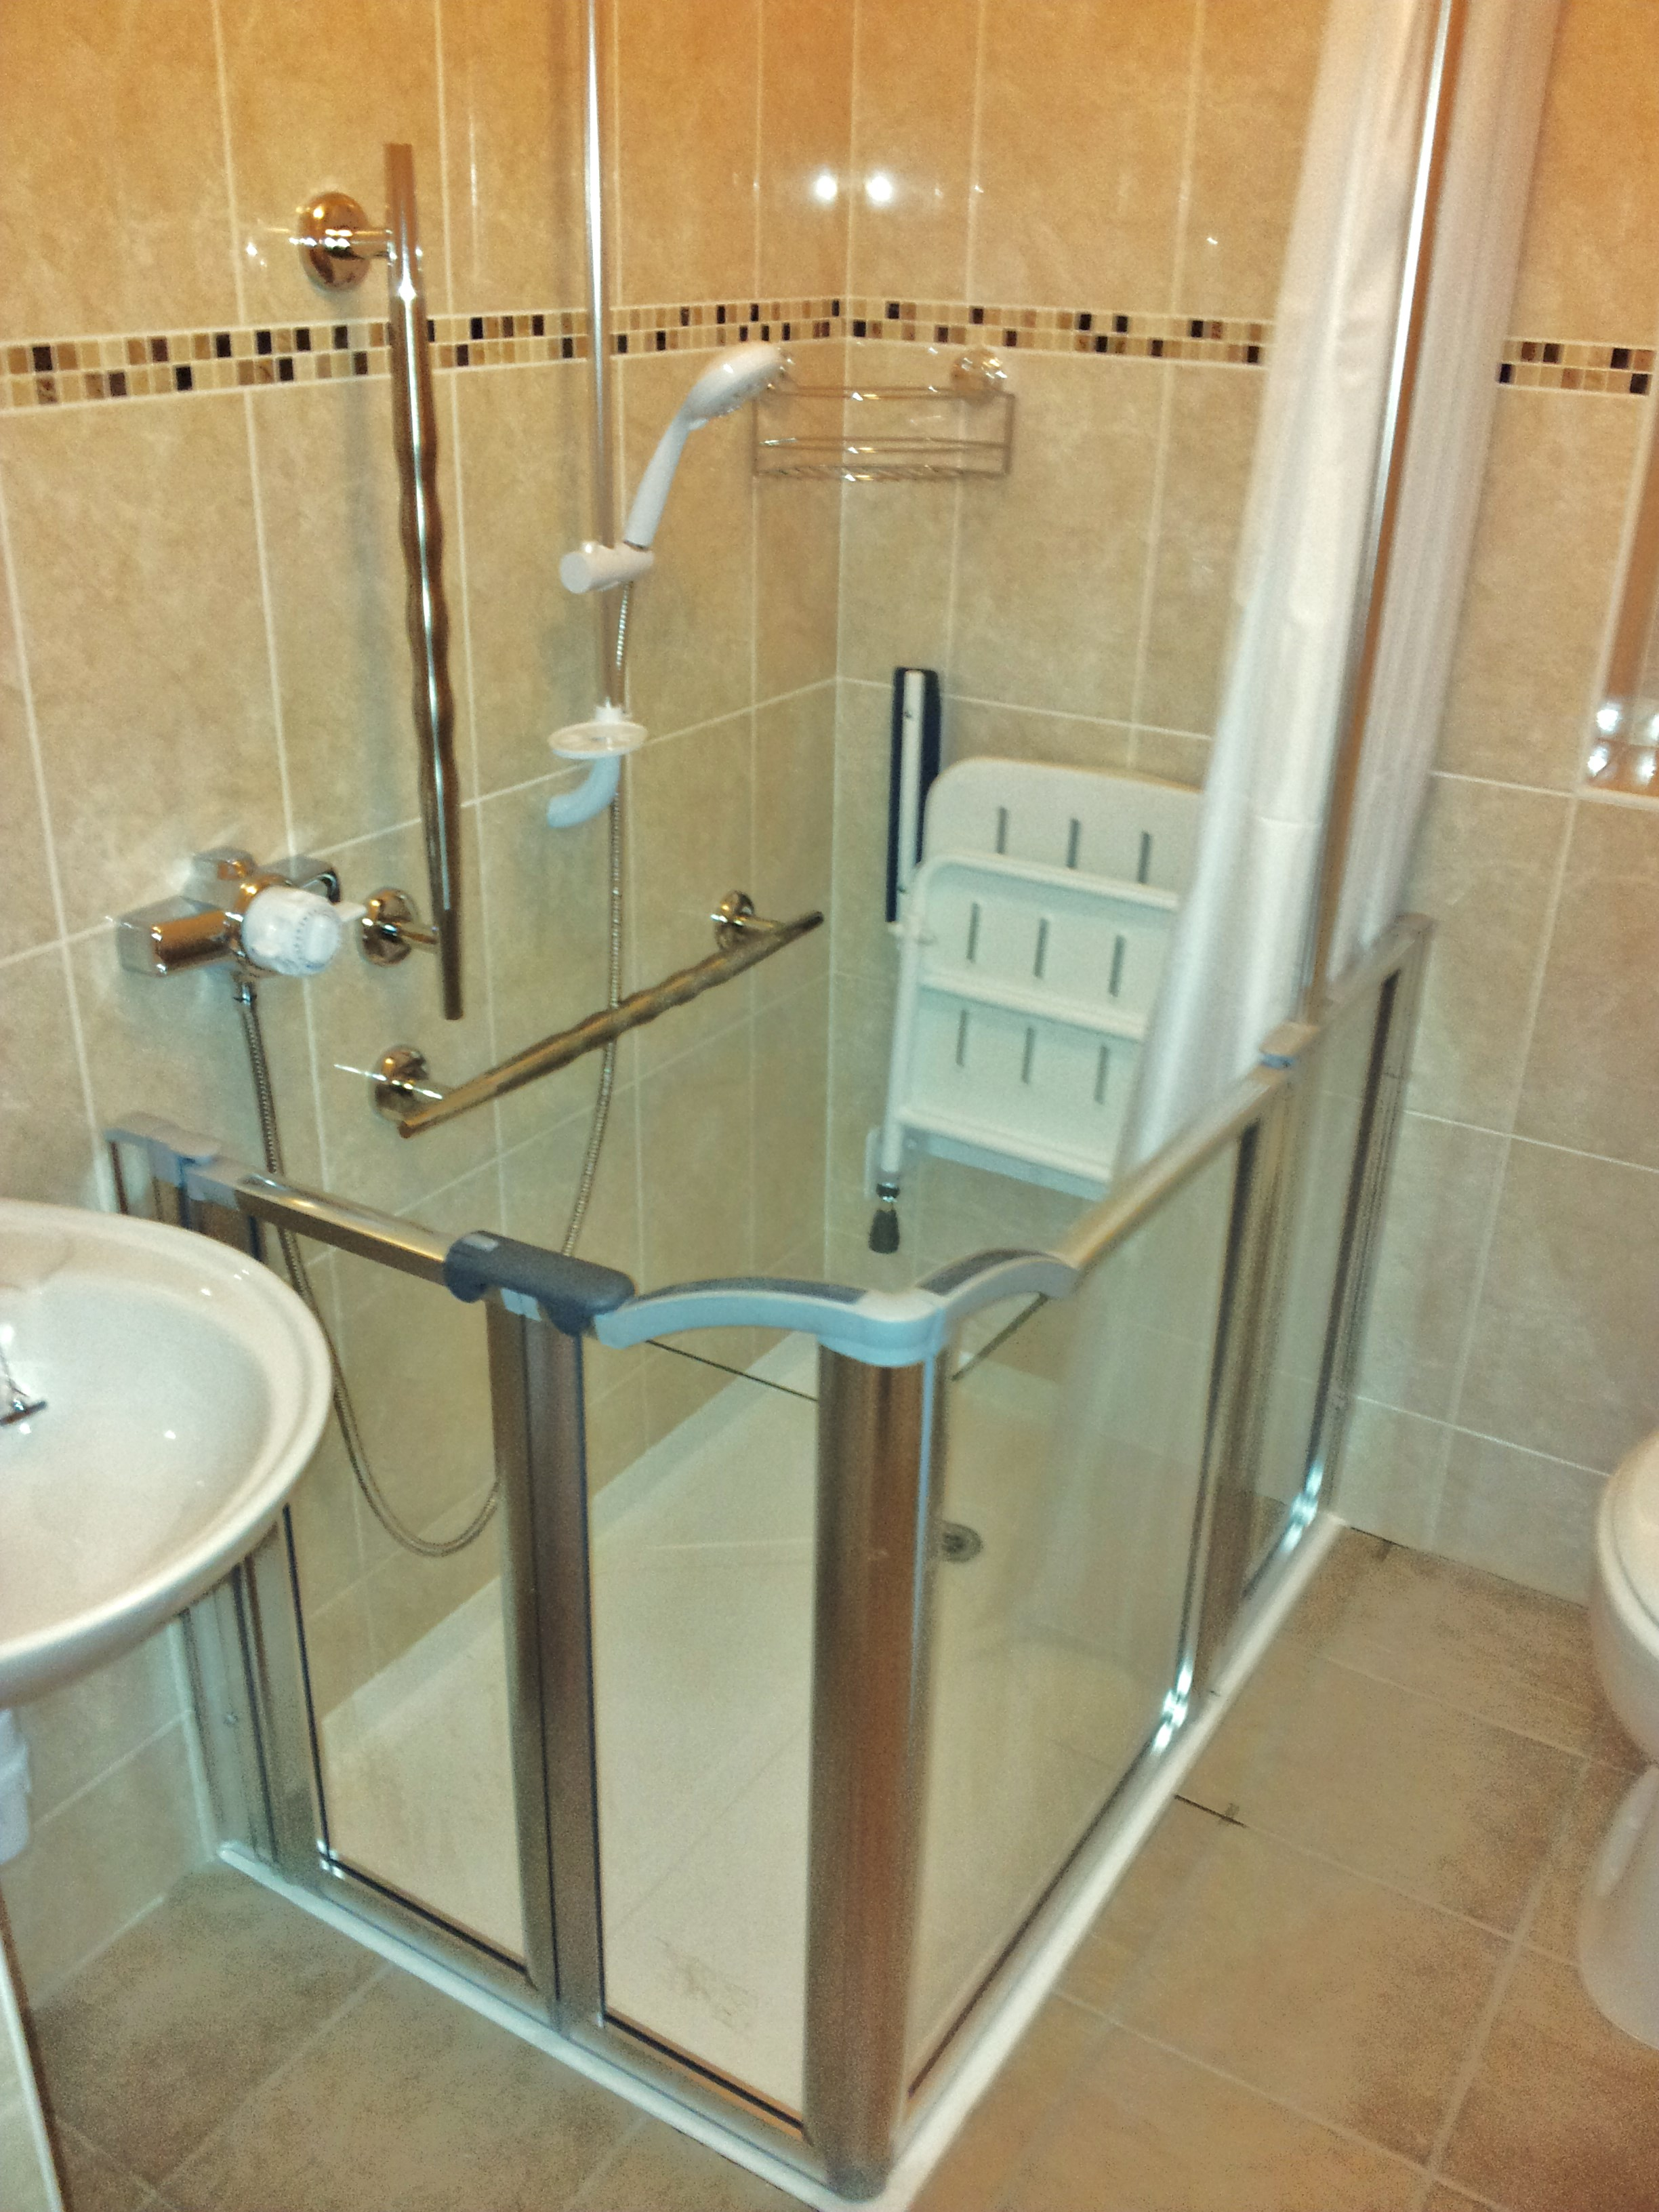 Disabled bathrooms less abled bathrooms disability - Accessible bathrooms for the disabled ...